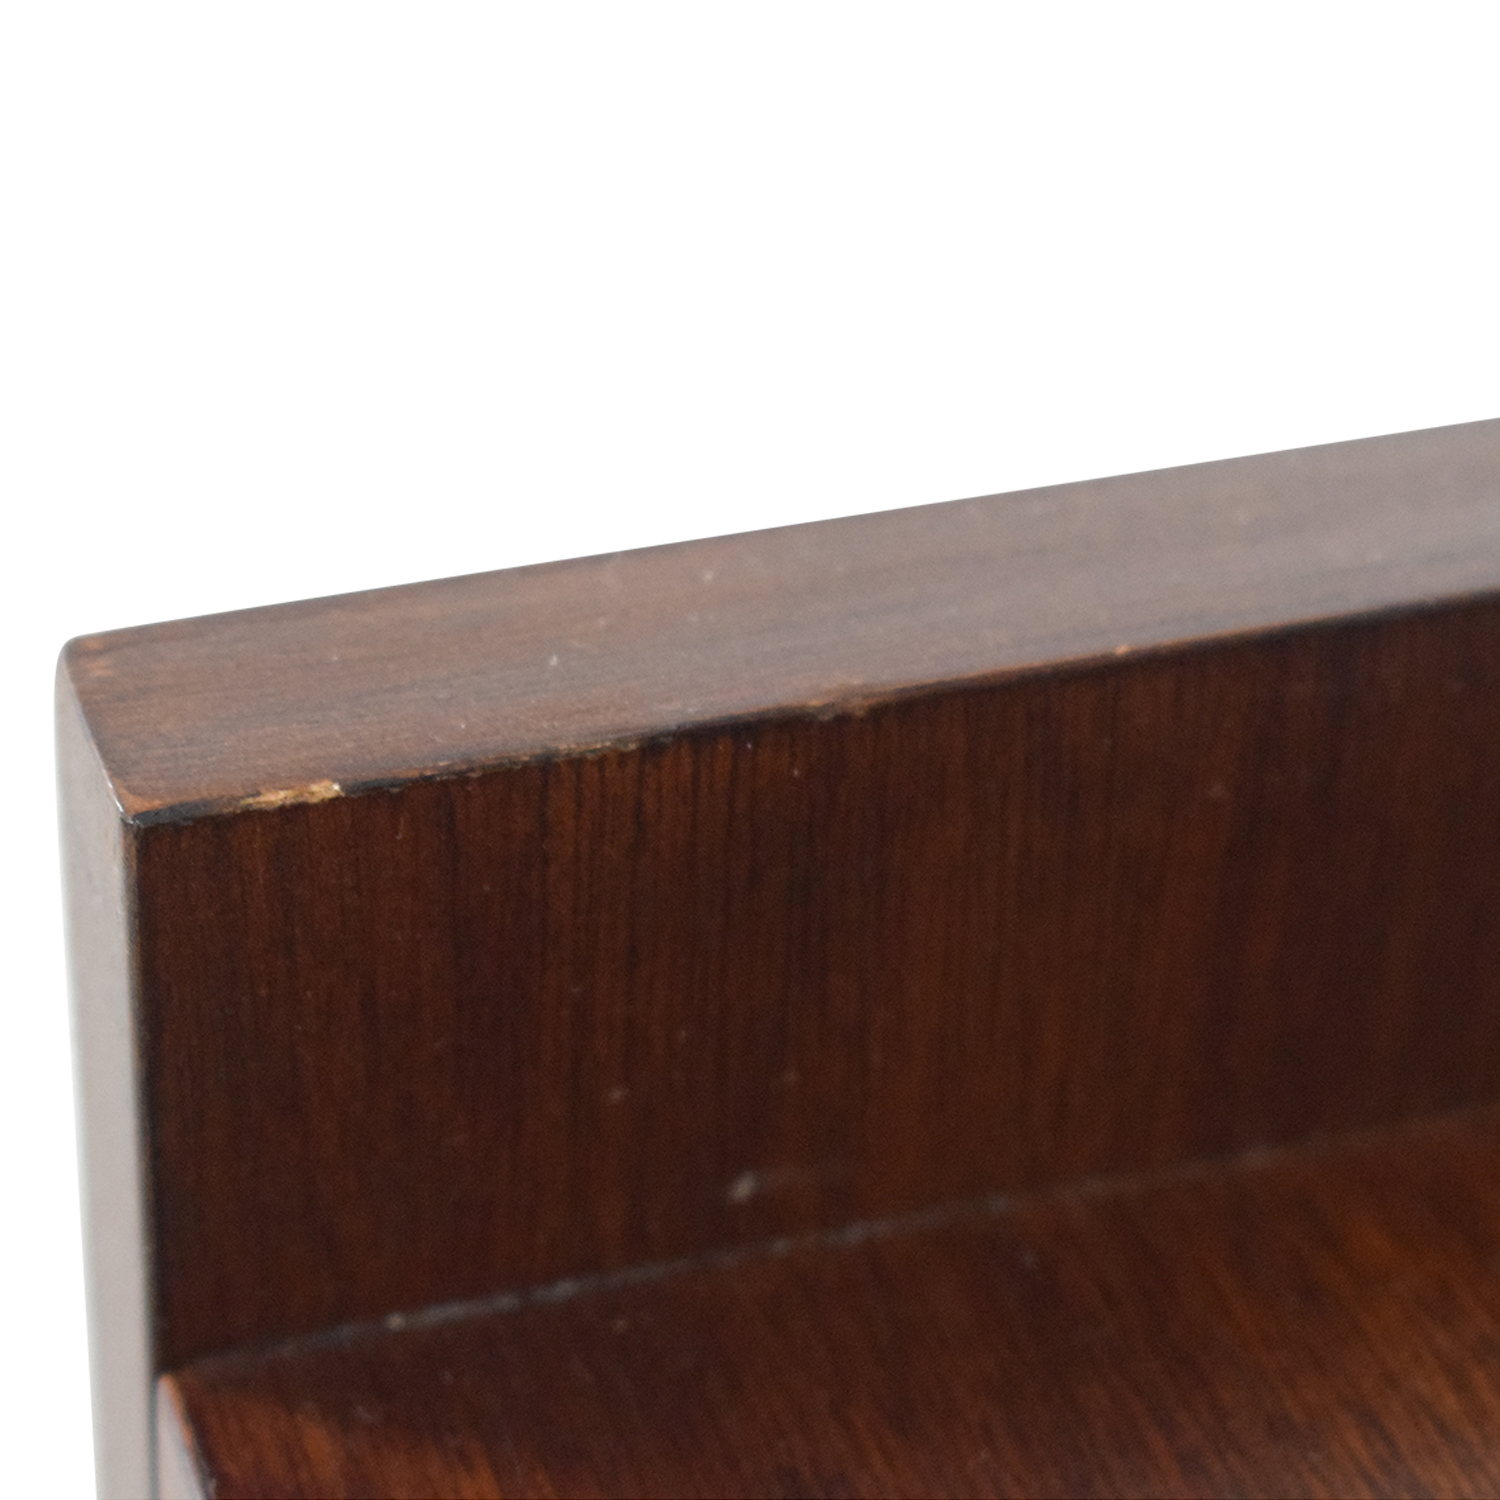 Crate & Barrel Crate & Barrel Brown Leaning Wine Bar for sale